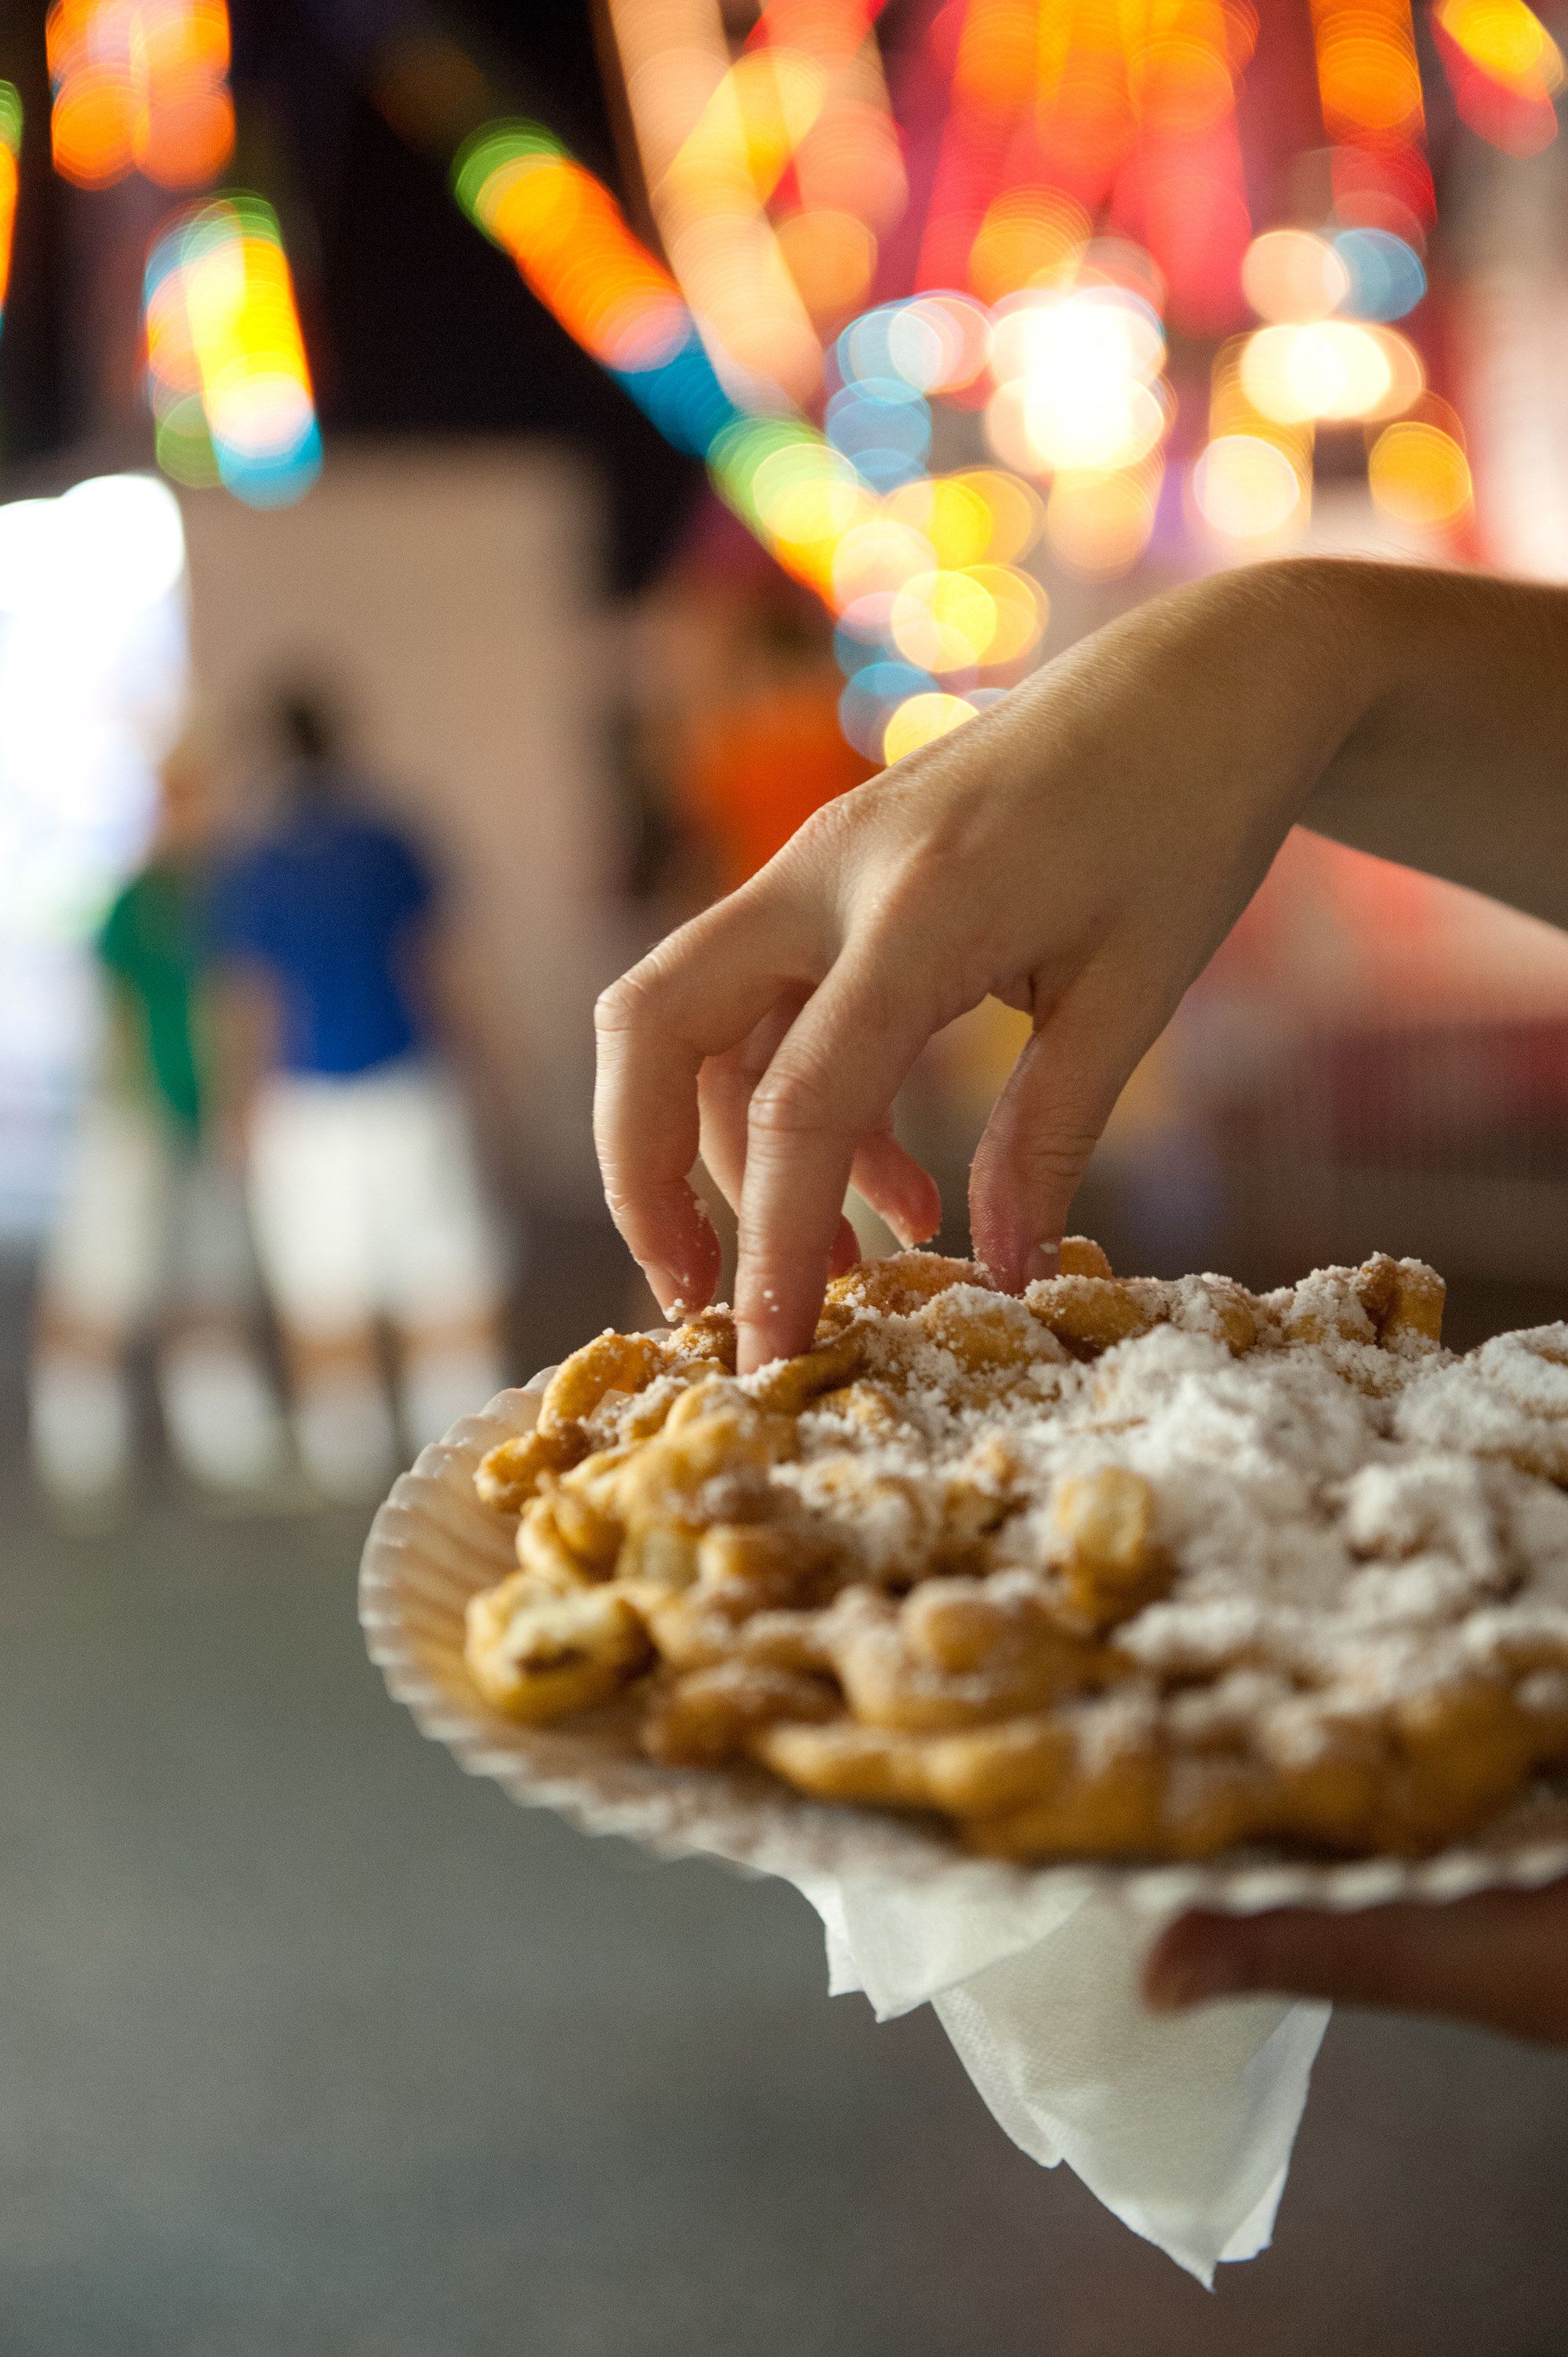 A person holds a sugar topped funnel cake in hand at the Maryland State Fair